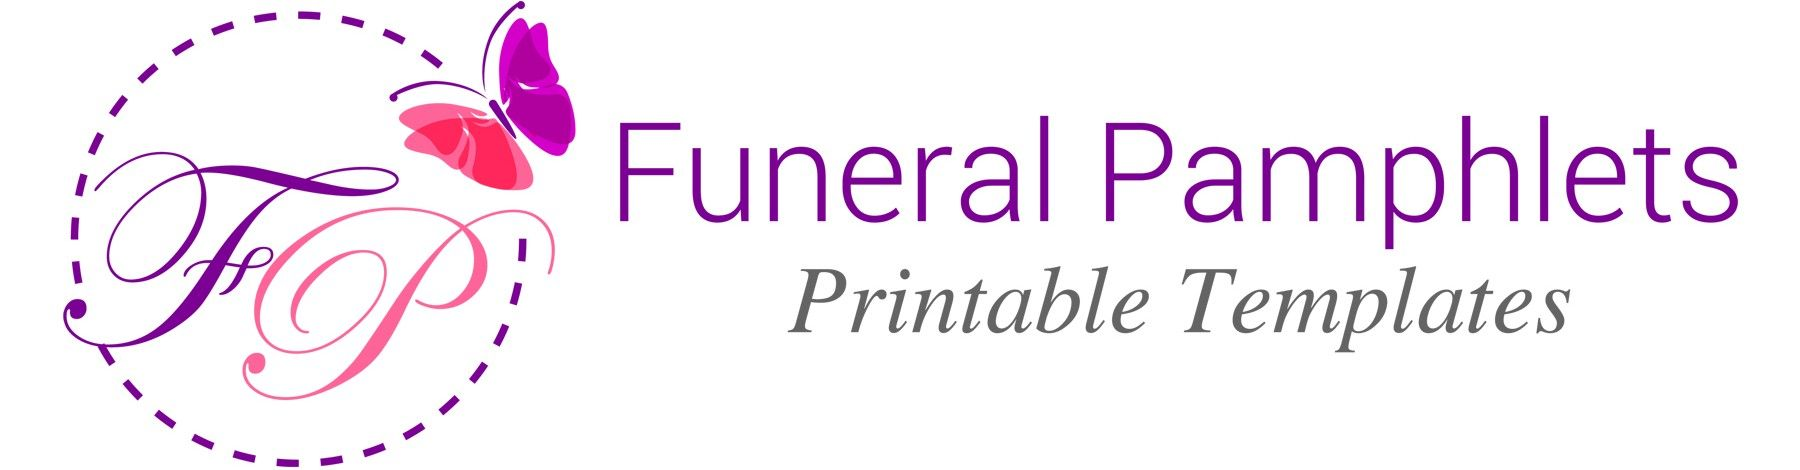 Download funeral program templates for the Service ...